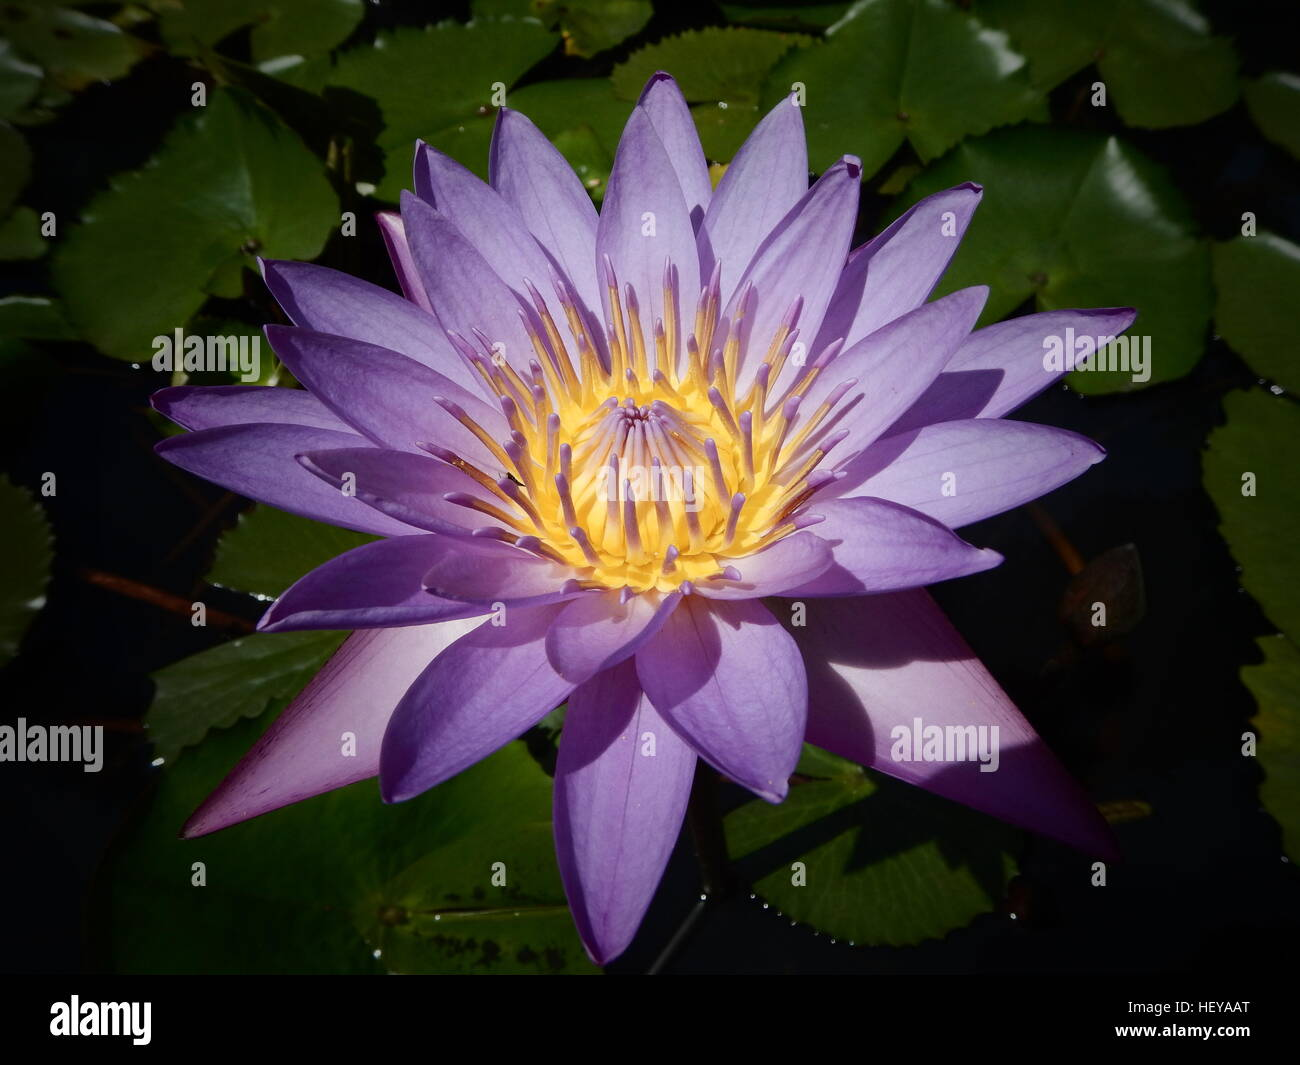 This Is A Purple Flower In The Philippines Stock Photo 129678608